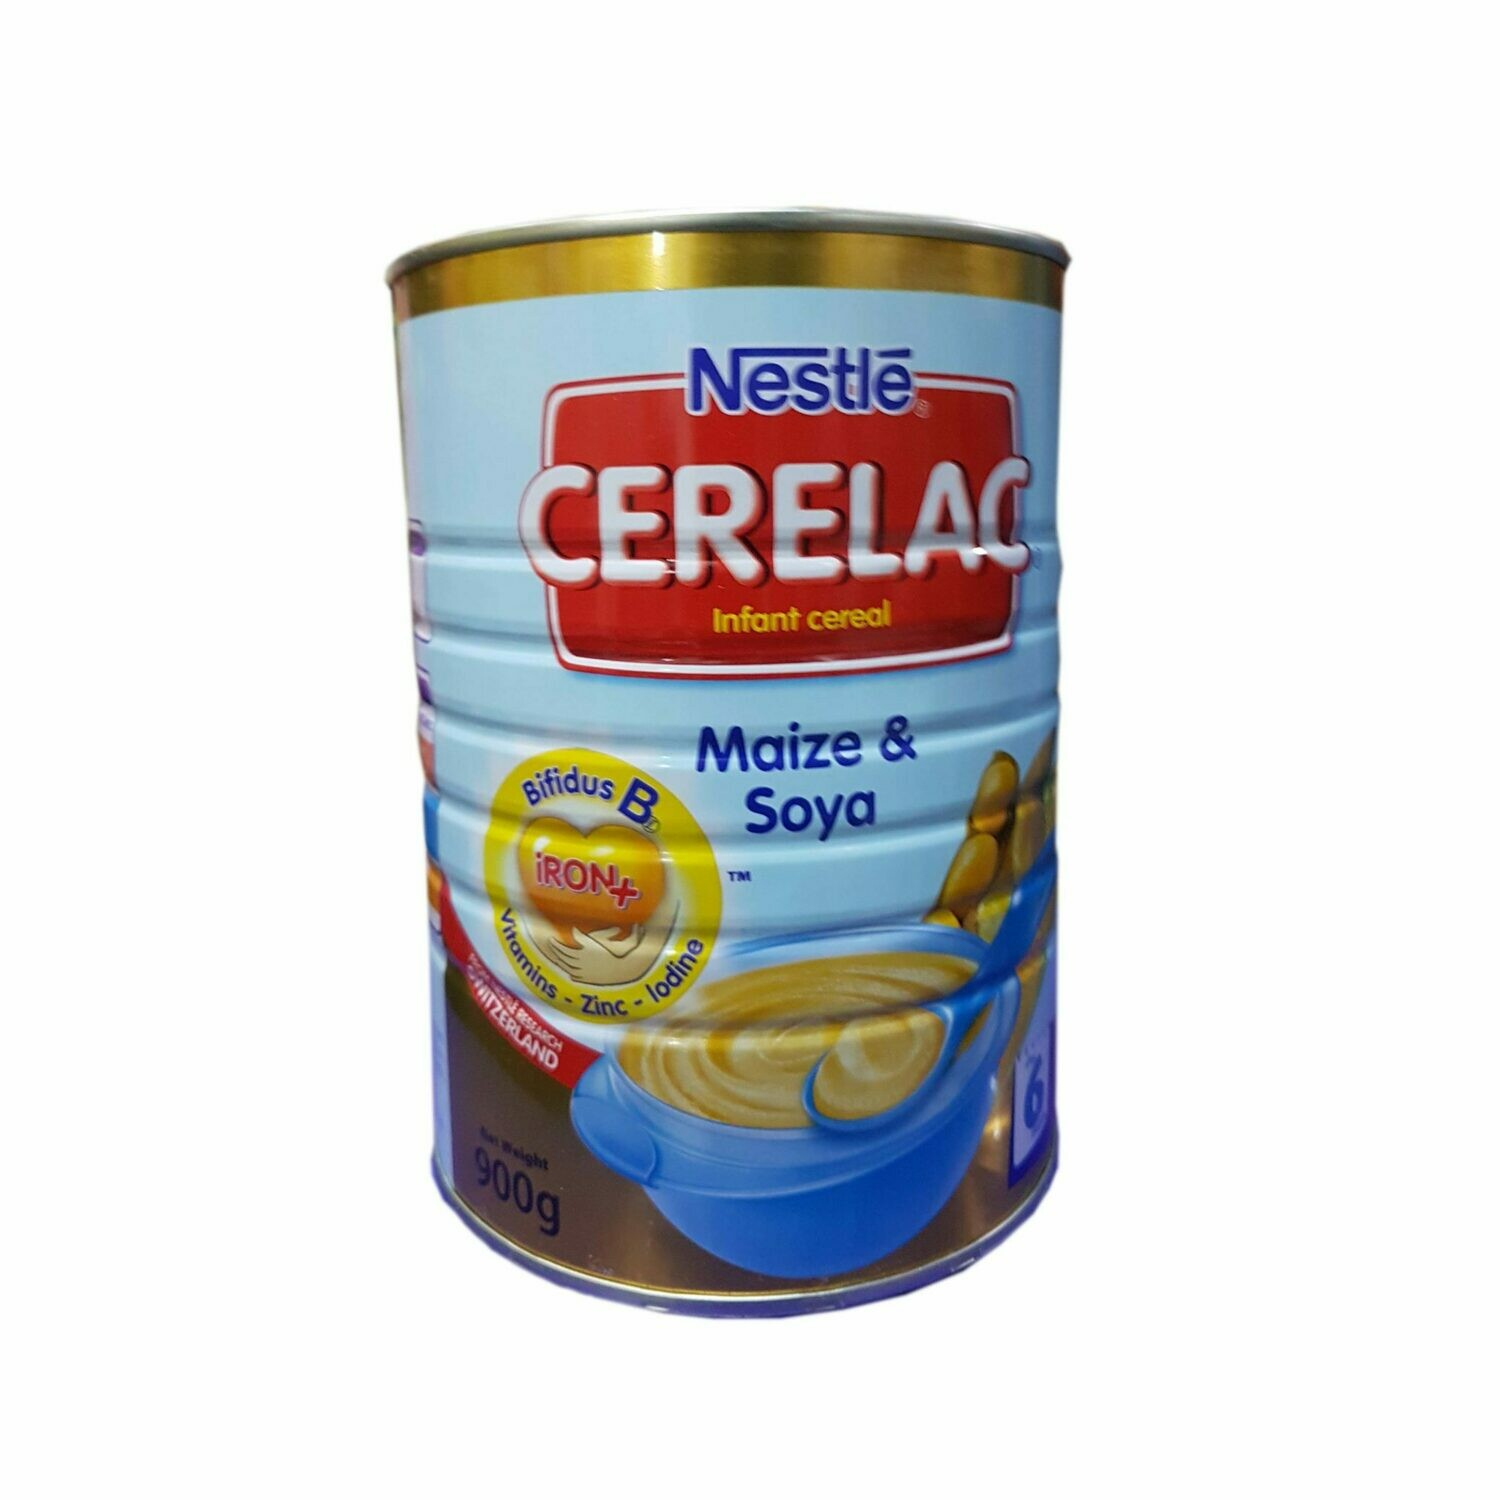 NESTL� CERELAC MAIZE & SOYA 900G TIN